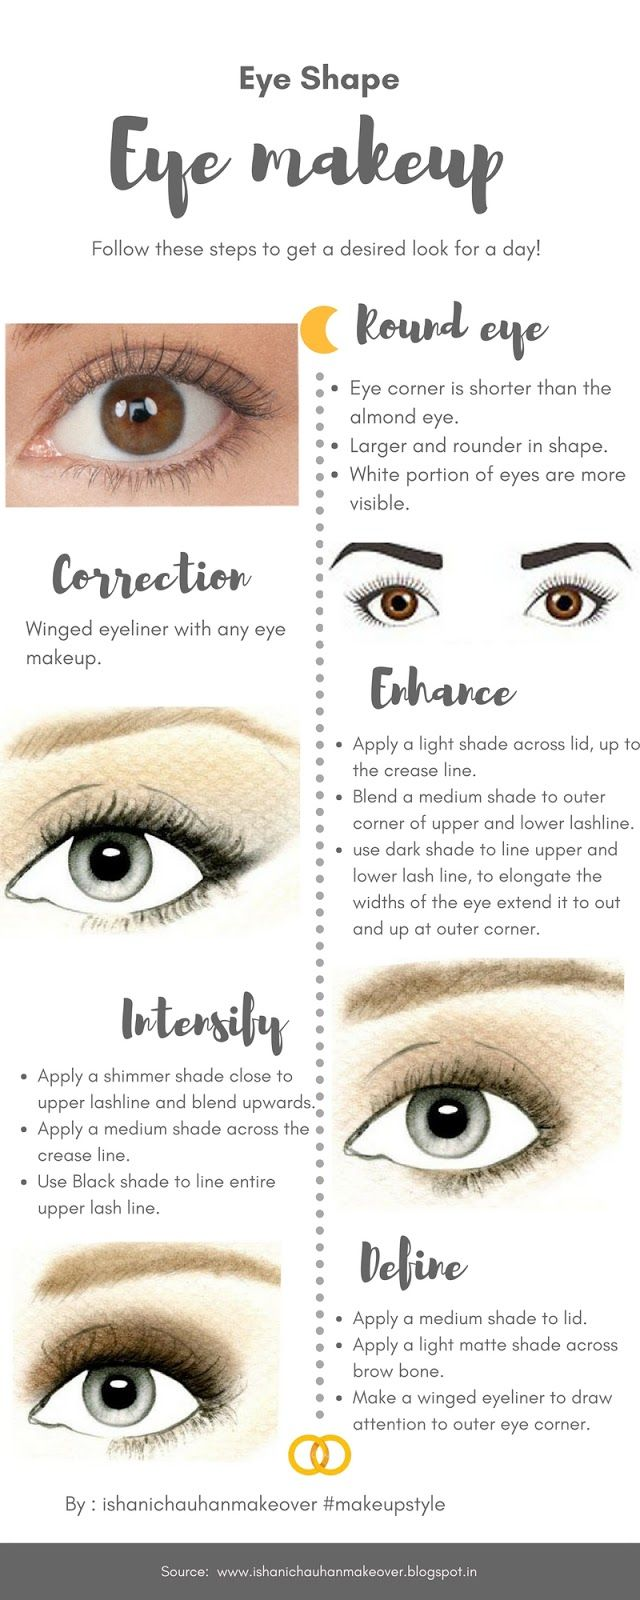 Eye Makeup for Round Eyes  Makeup for round eyes, Eyeliner round